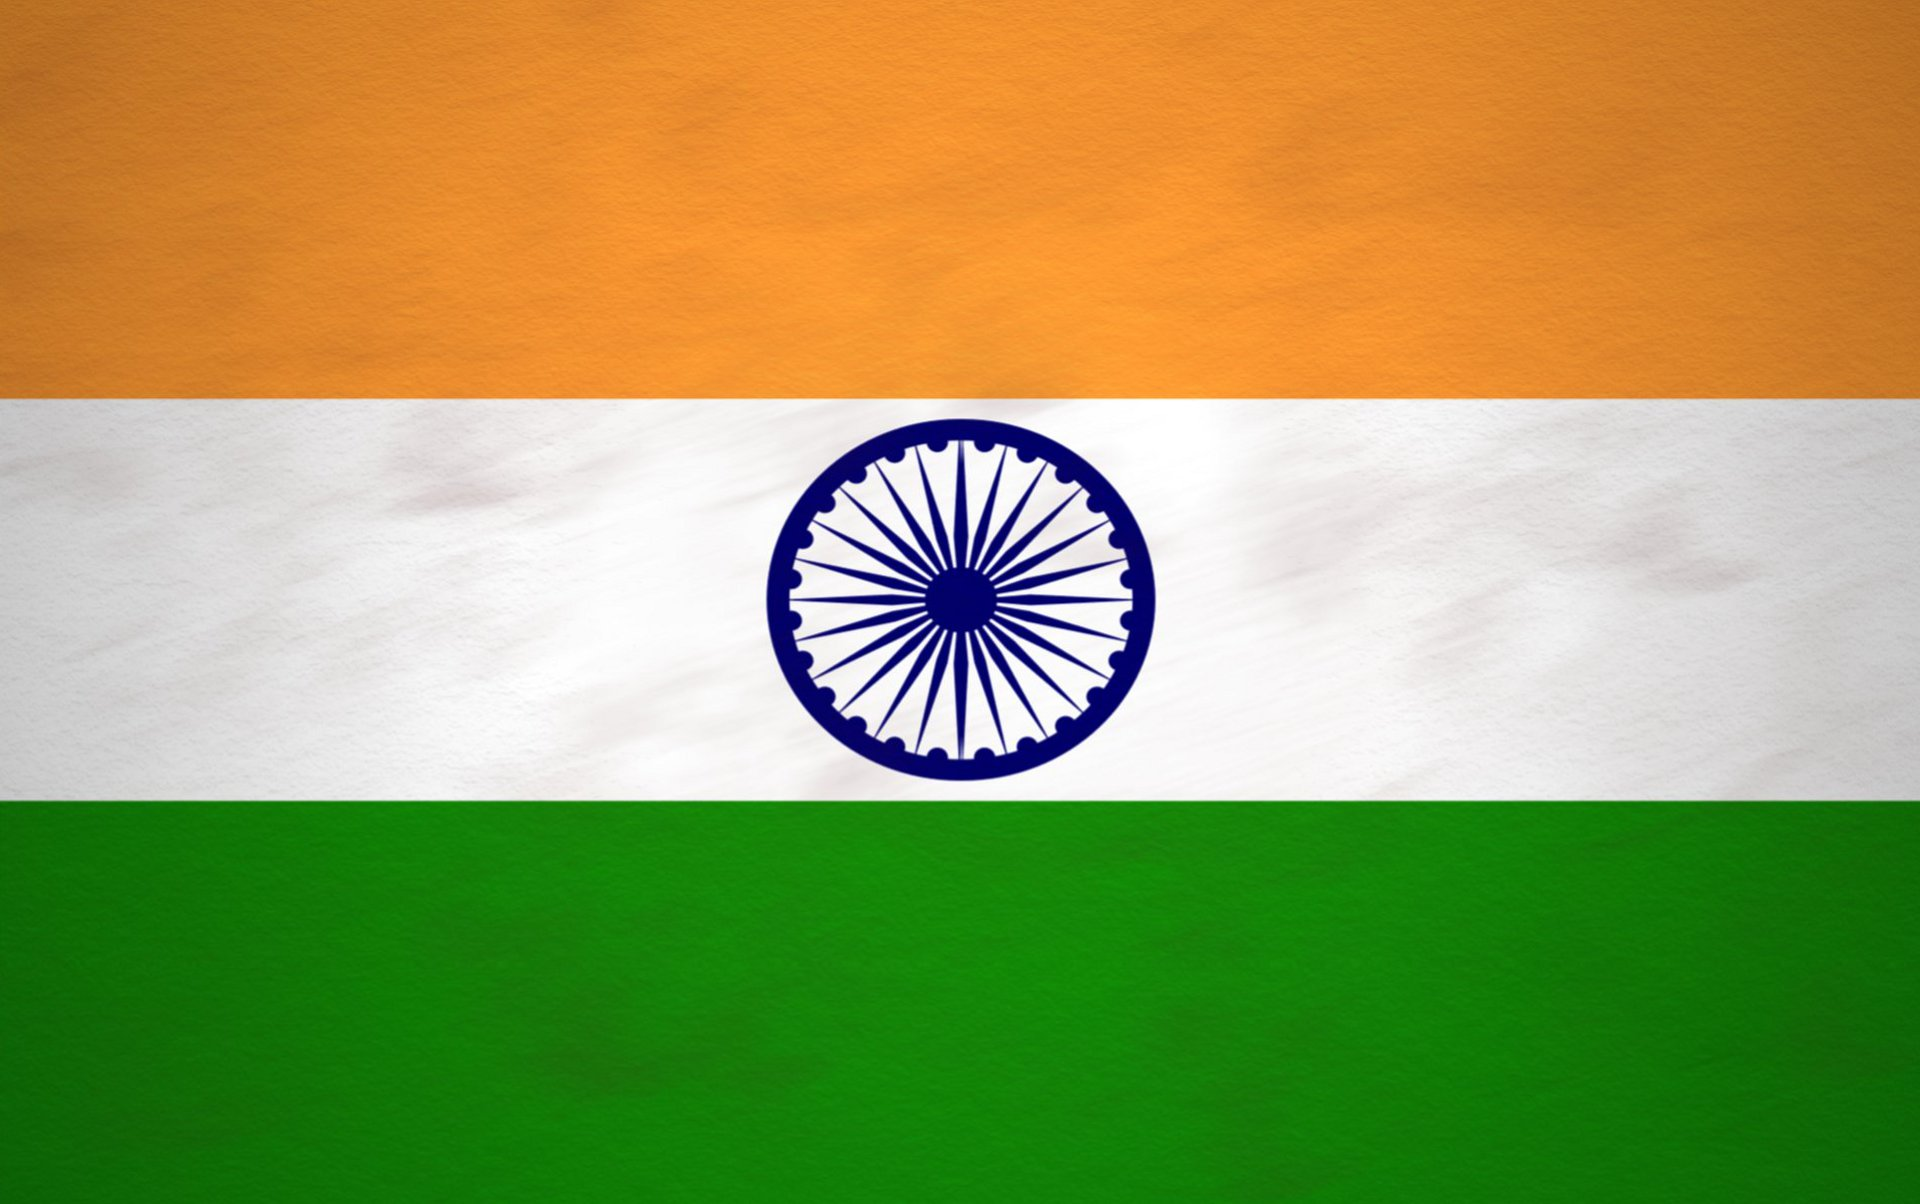 India Flag: Indian Flag Wallpapers & HD Images 2018 [Free Download]